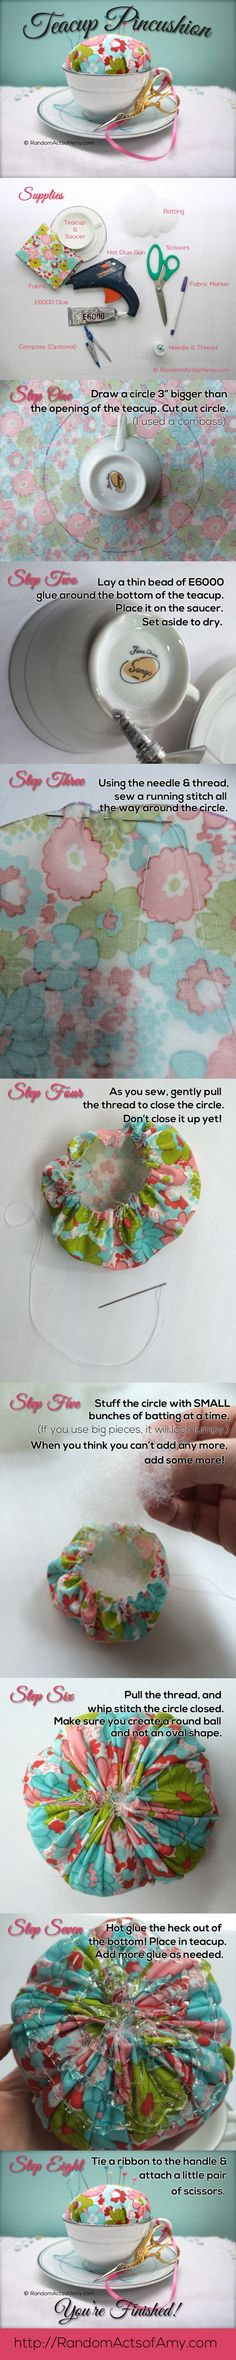 Teacup pincushion tutorial. We used crushed walnut shells or wool stuffing for a filler.